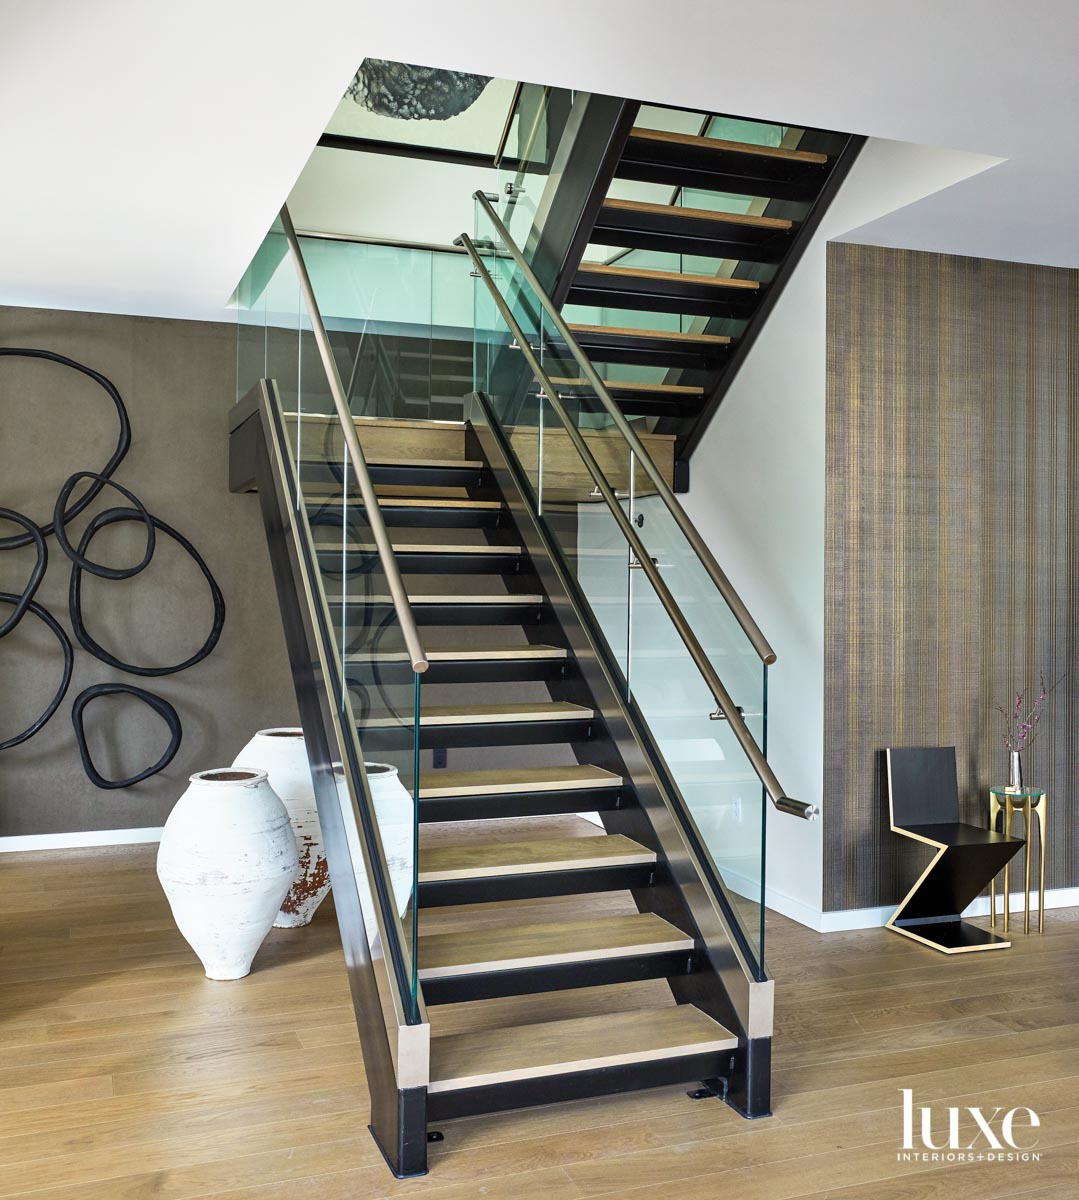 A glass staircase. Behind it...